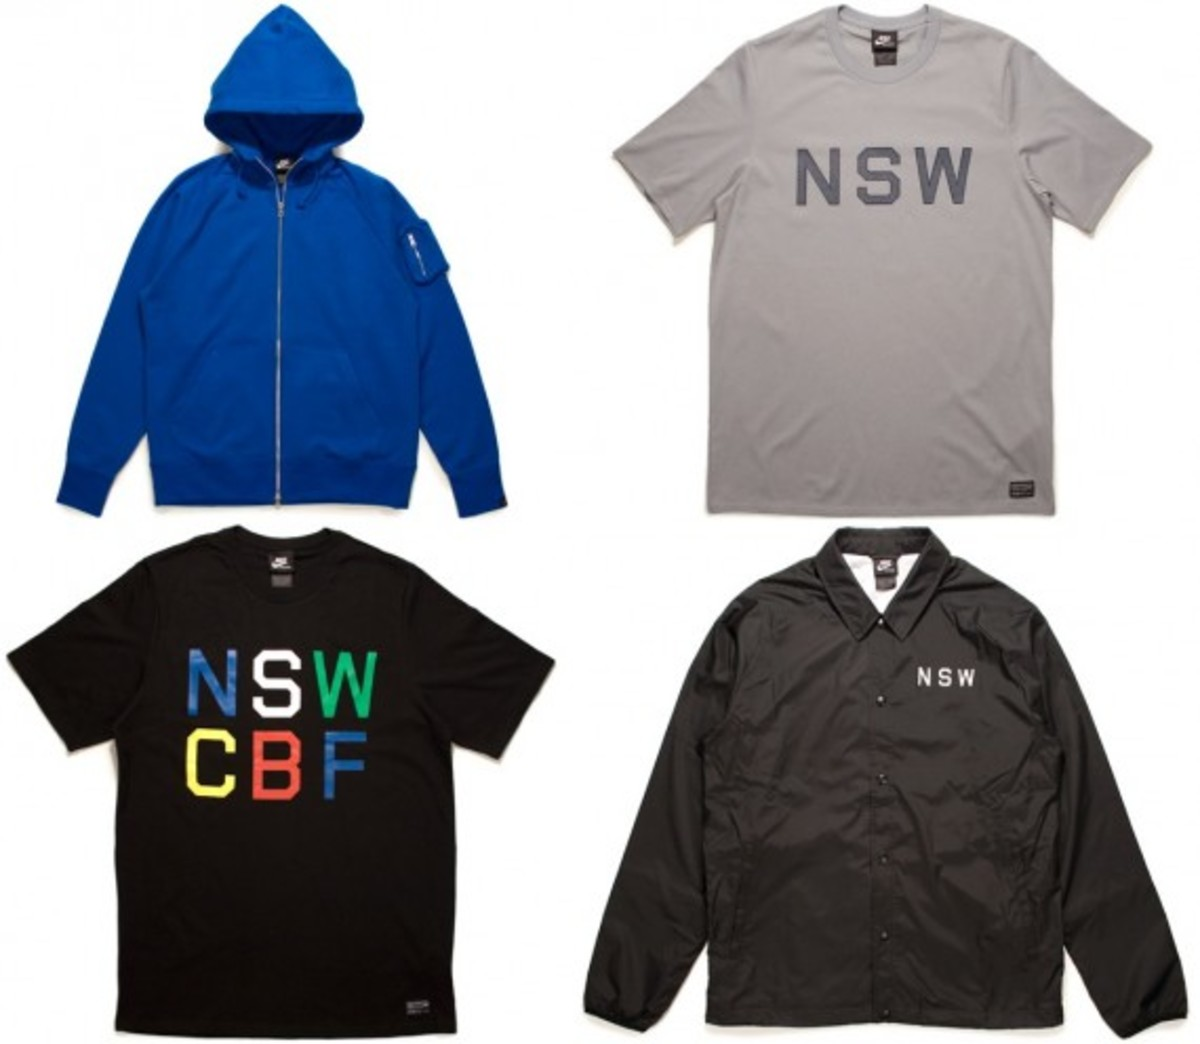 nike-sportswear-nsw-summer-2010-collection-0